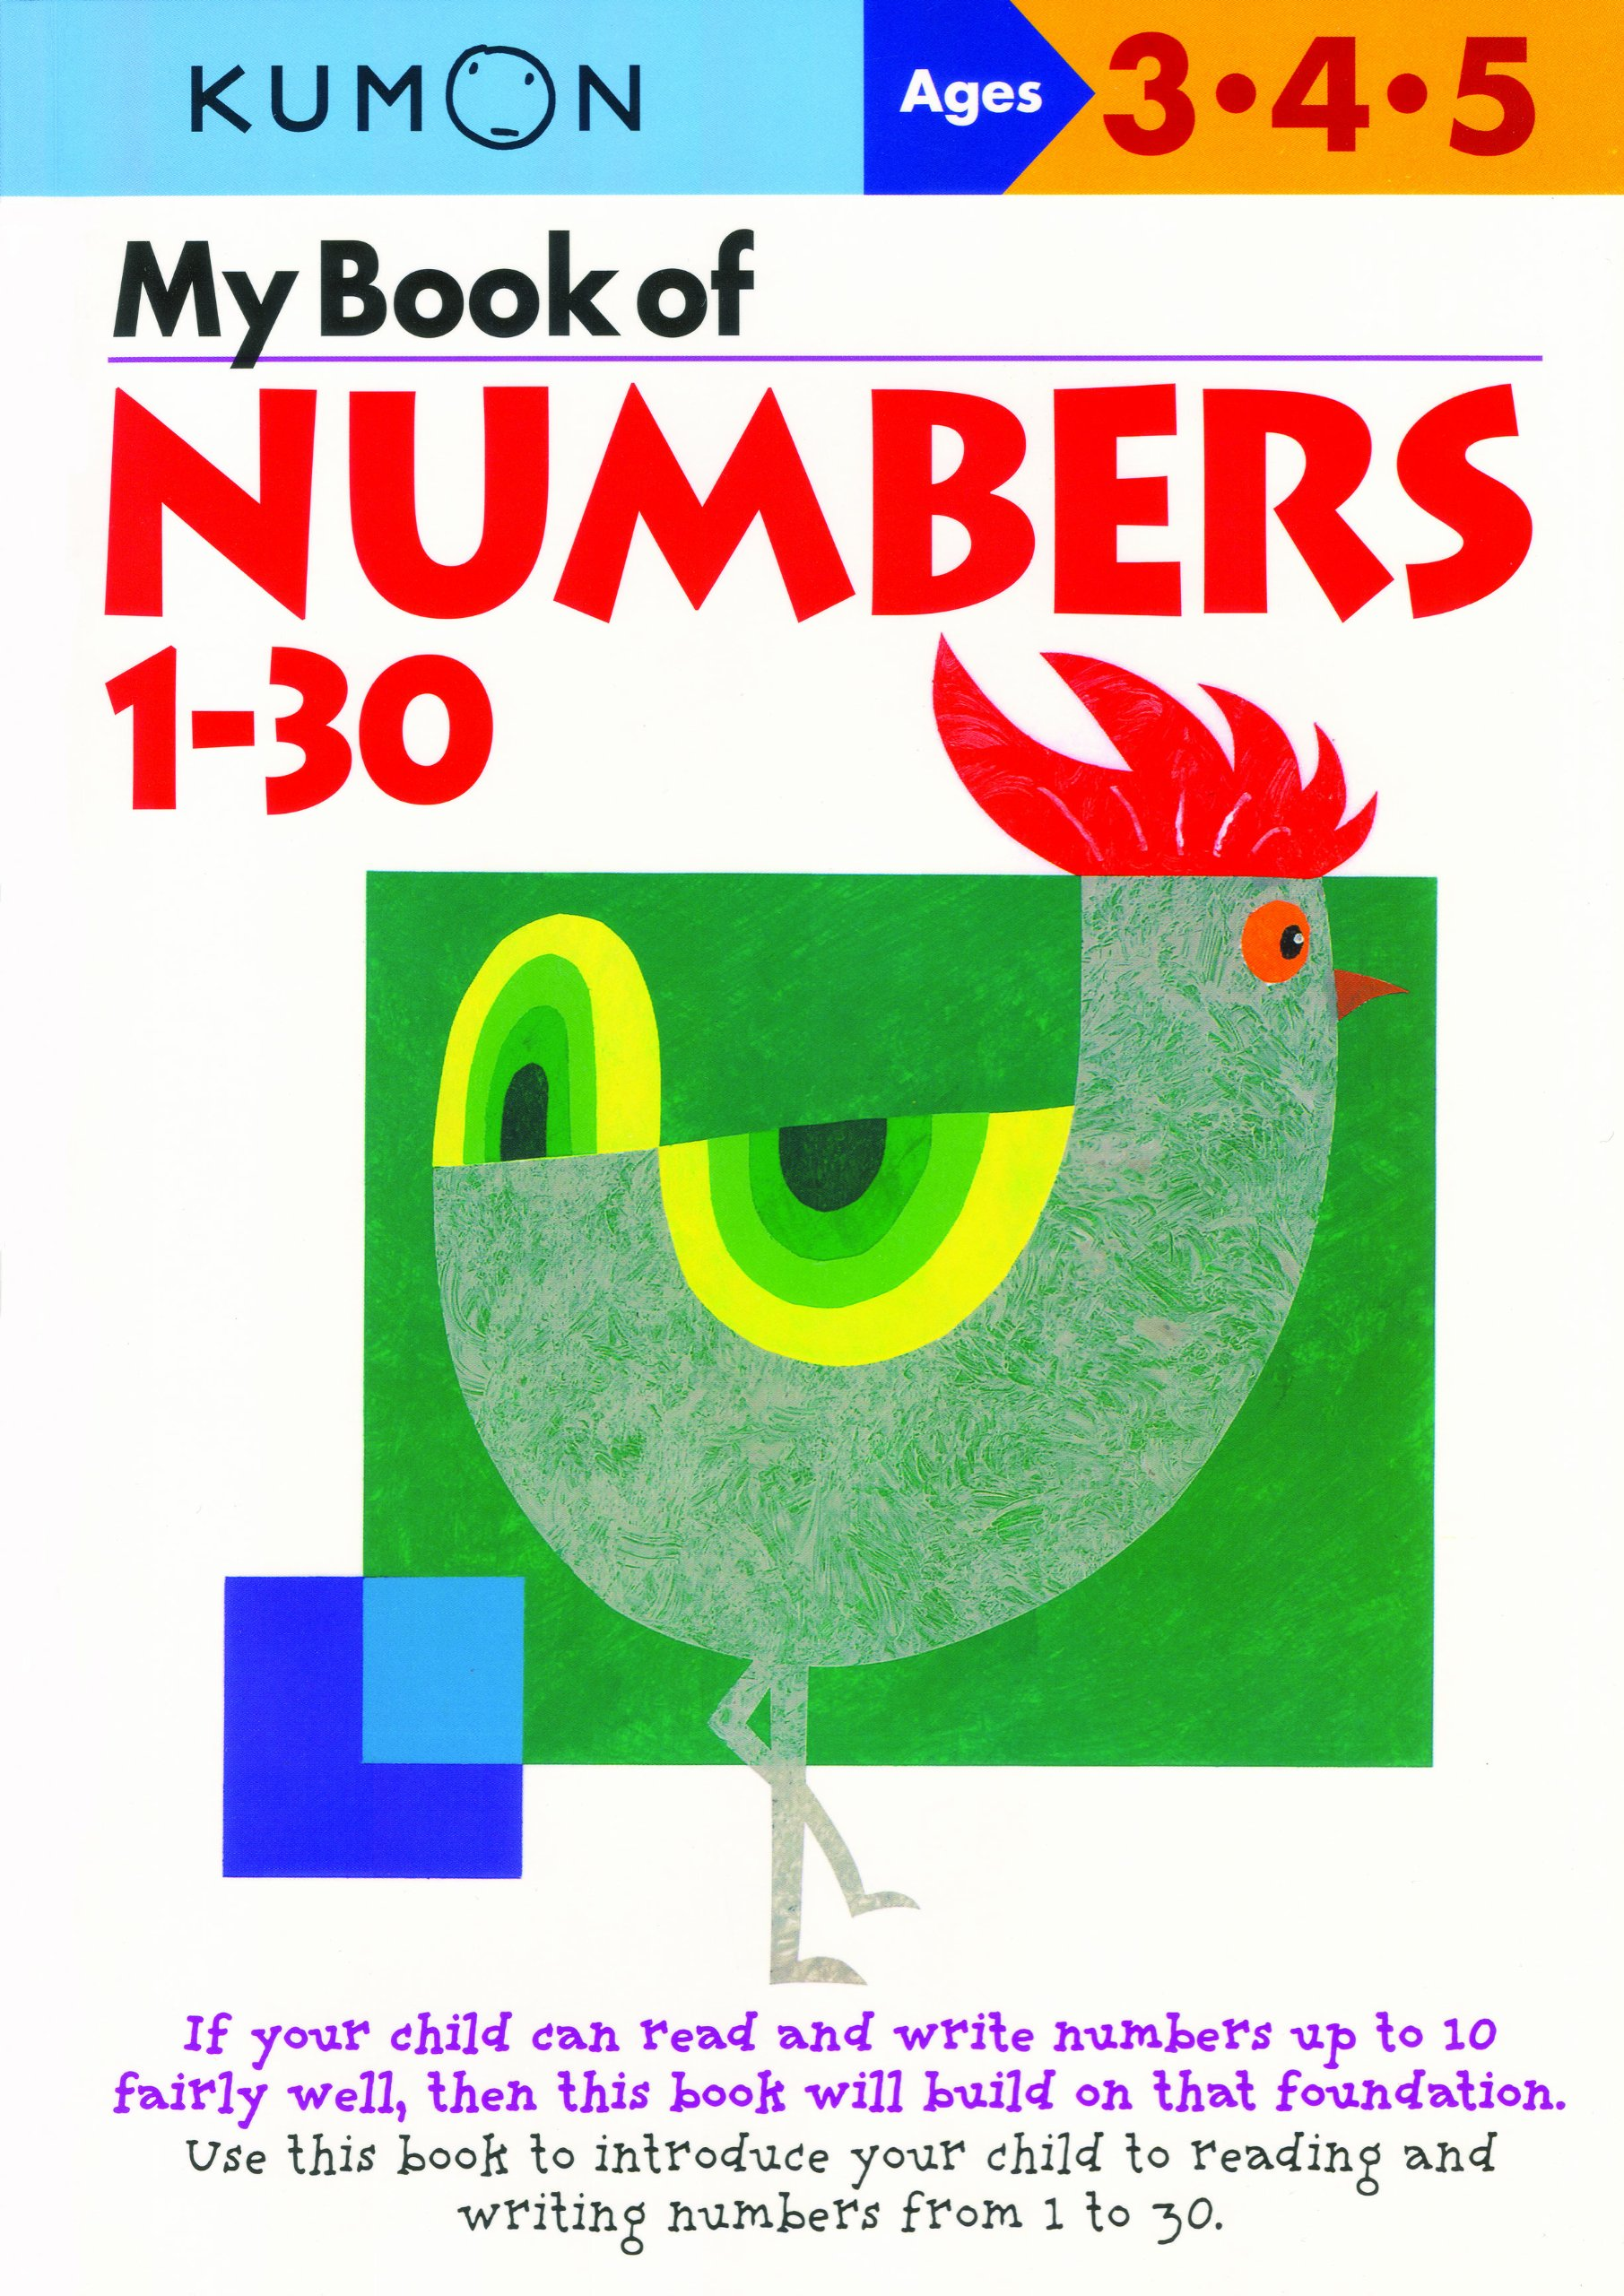 Printables Kumon Worksheets For Sale amazon com my book of numbers 1 30 kumon workbooks 9784774307039 books